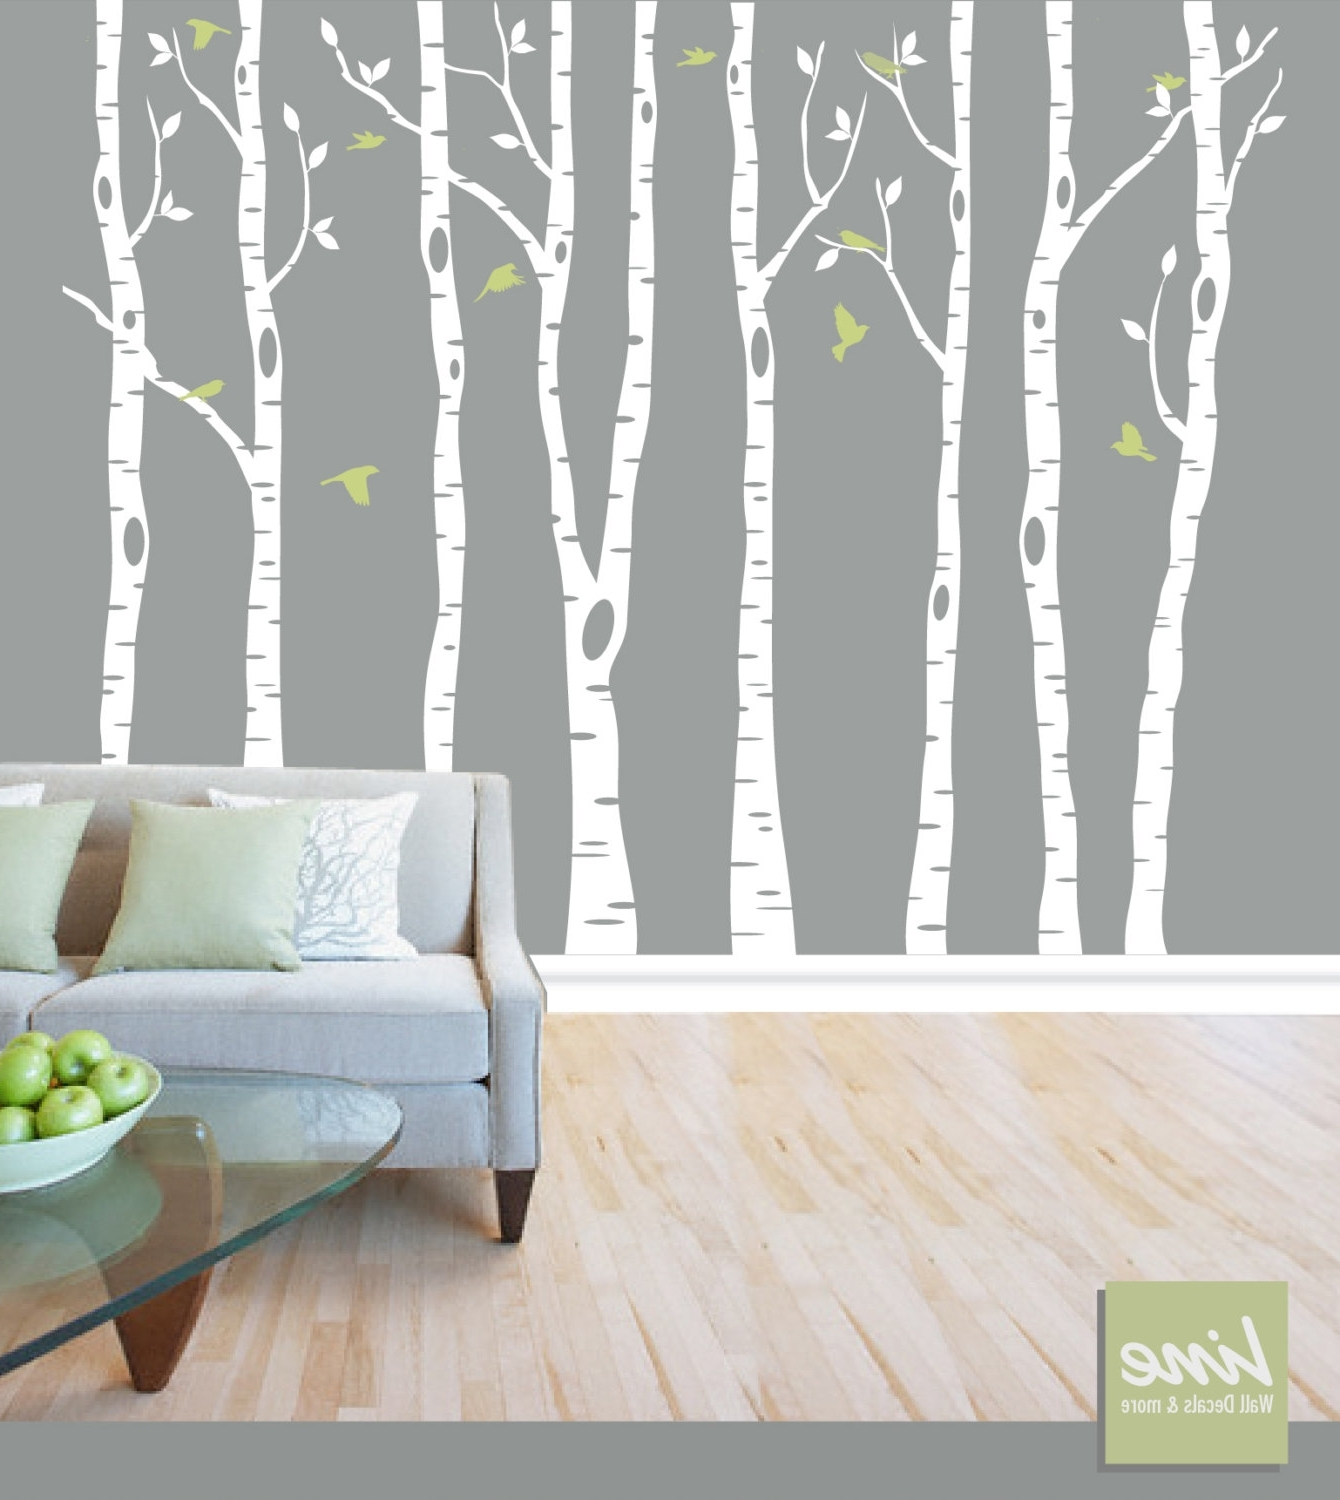 Vinyl Stickers Wall Accents Regarding Well Known Wall Birch Tree Decal Forest, Birch Trees, Birch Trees Vinyl (View 7 of 15)